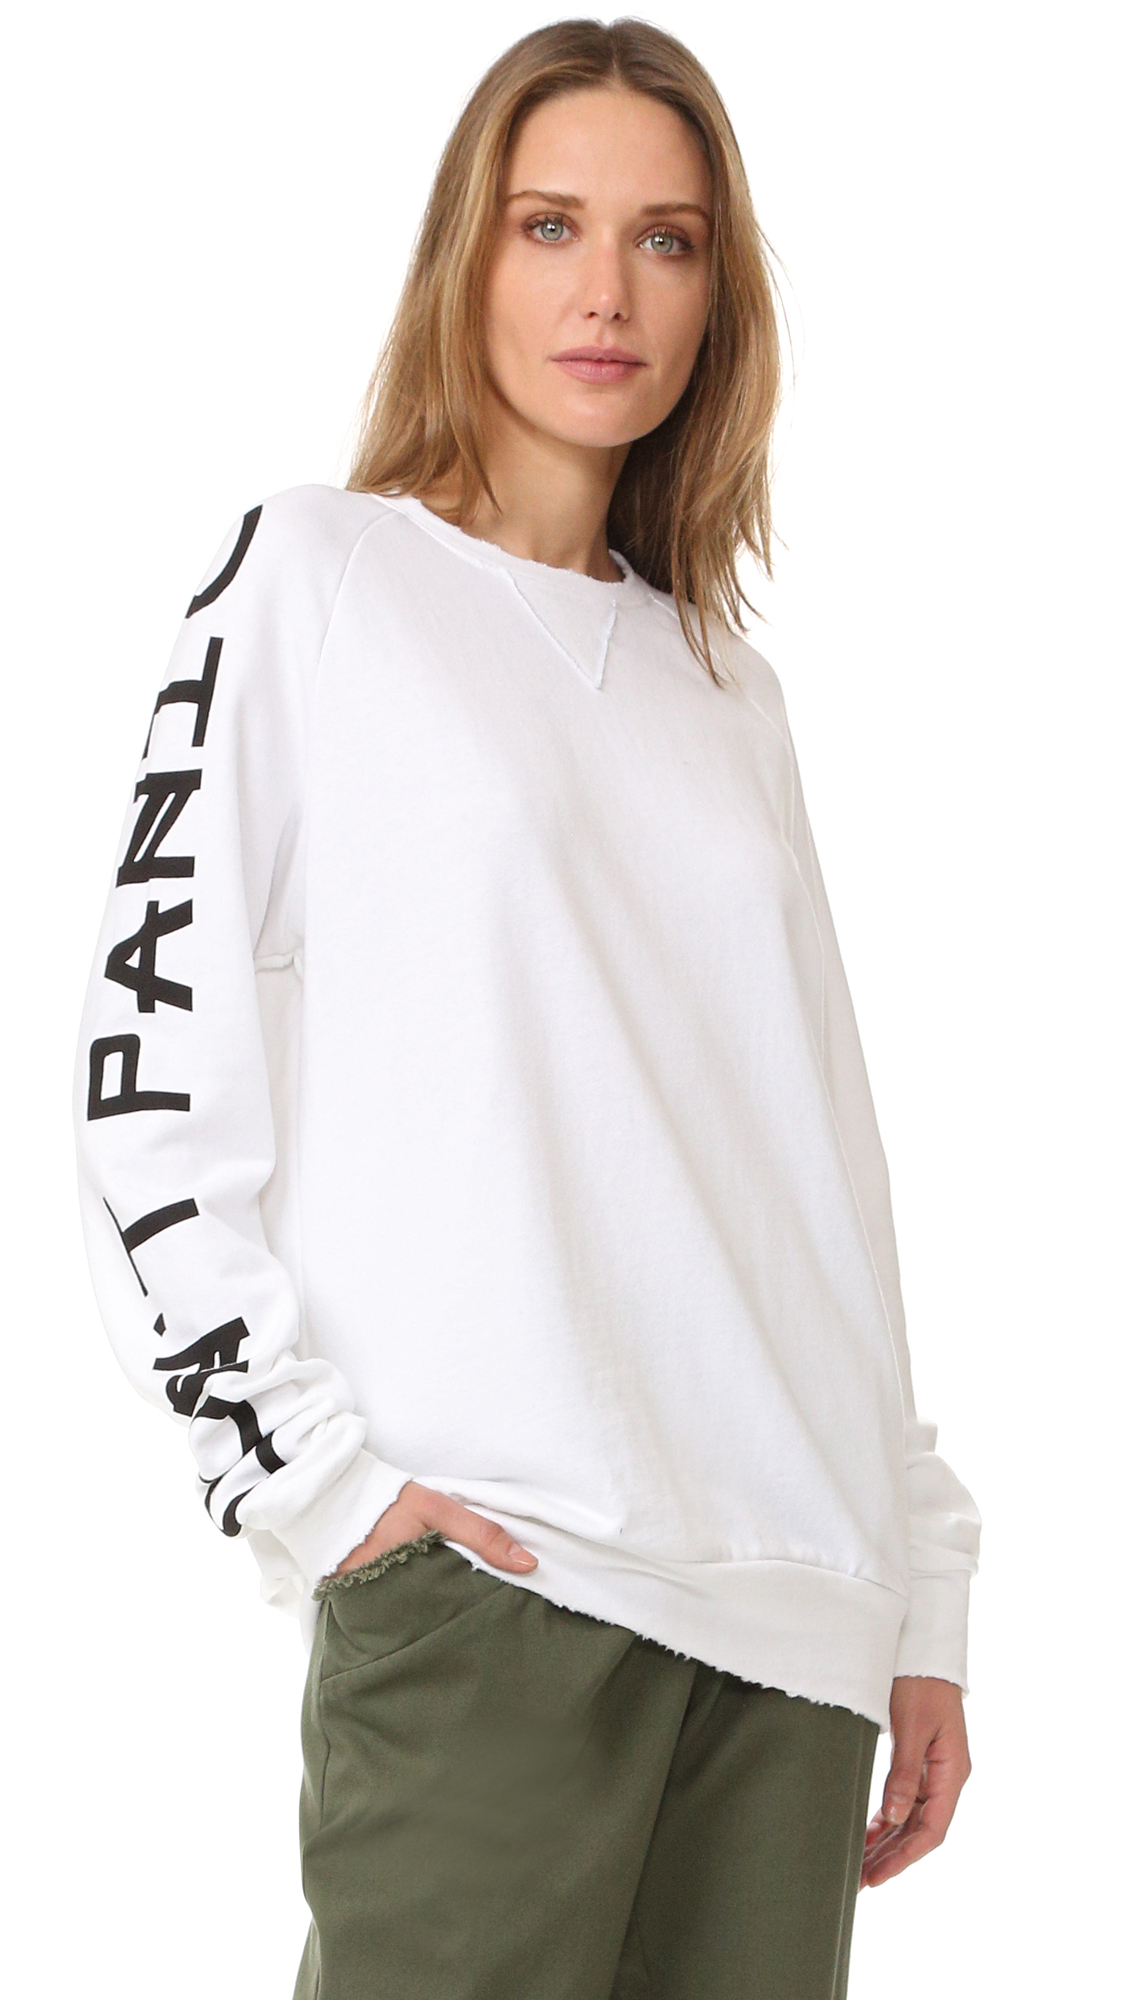 Bold 'Don't Panic' lettering accents this Baja East sweatshirt. Worn edges create an undone finish. Crew neckline with triangle inset. Long sleeves. Fabric: French terry. 100% supima cotton. Wash cold. Made in the USA. Measurements Length: 25.5in / 65